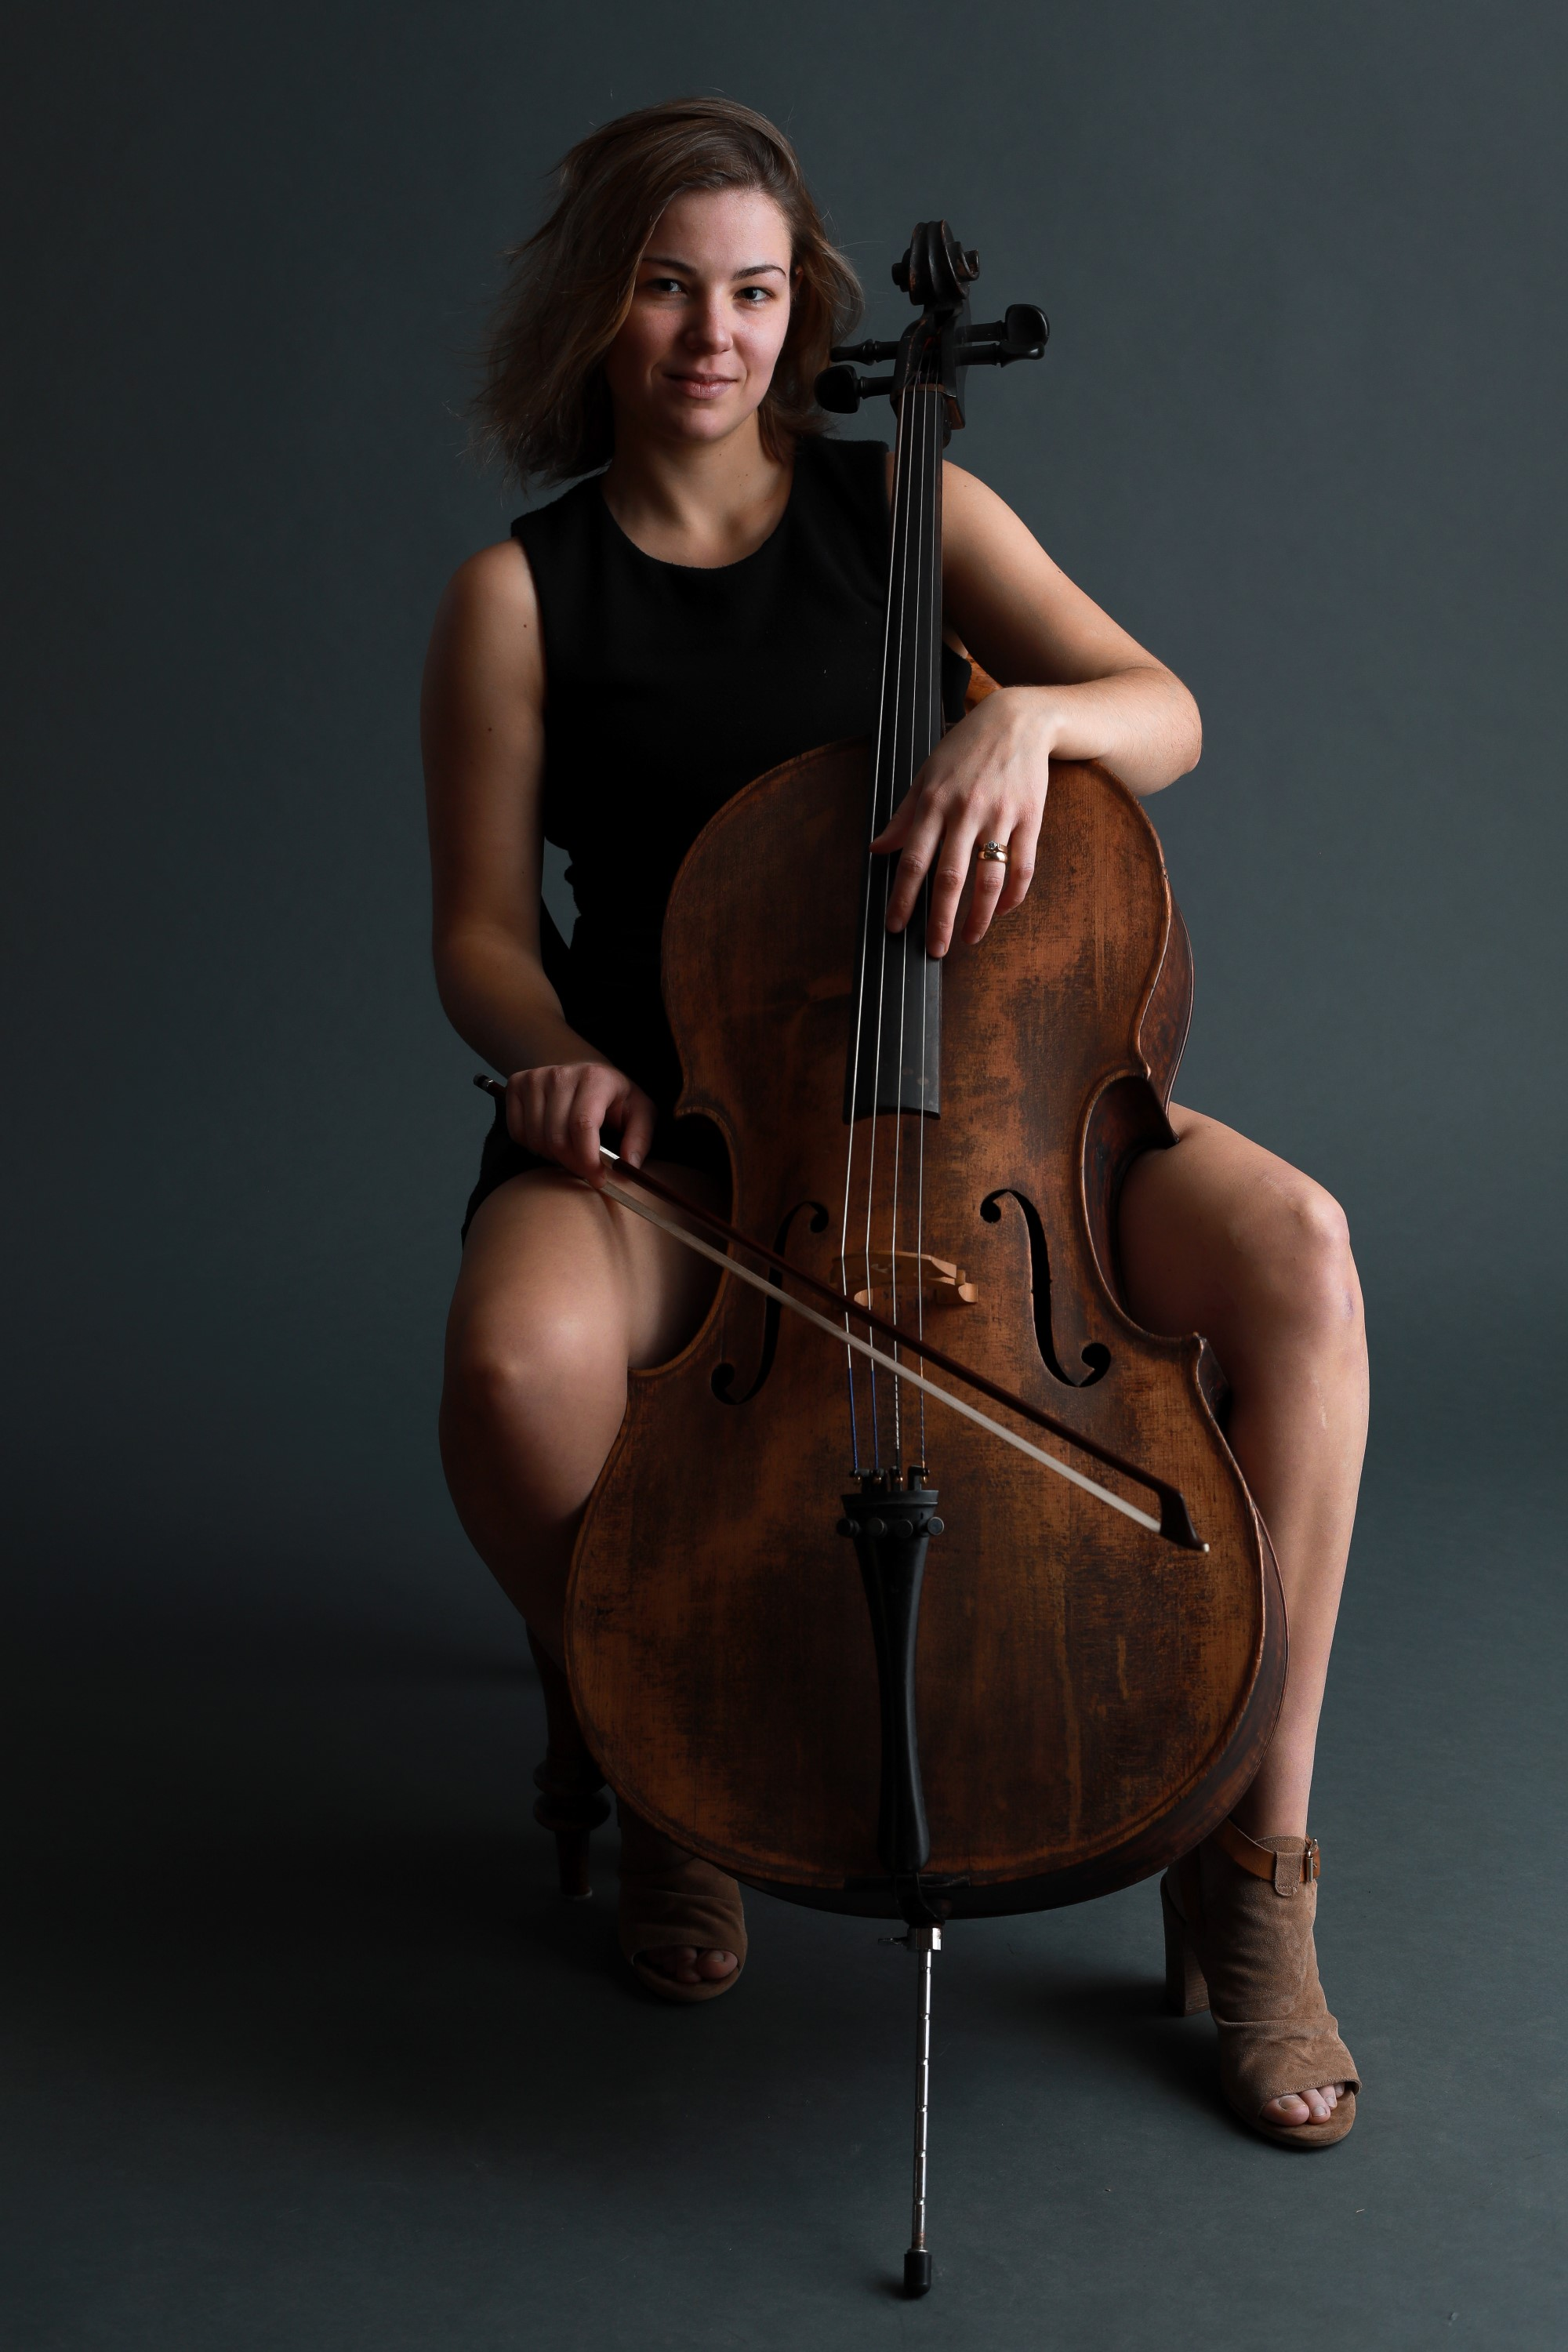 Celine Sawchuk w. Erwin, cello - photo by Howard Fry